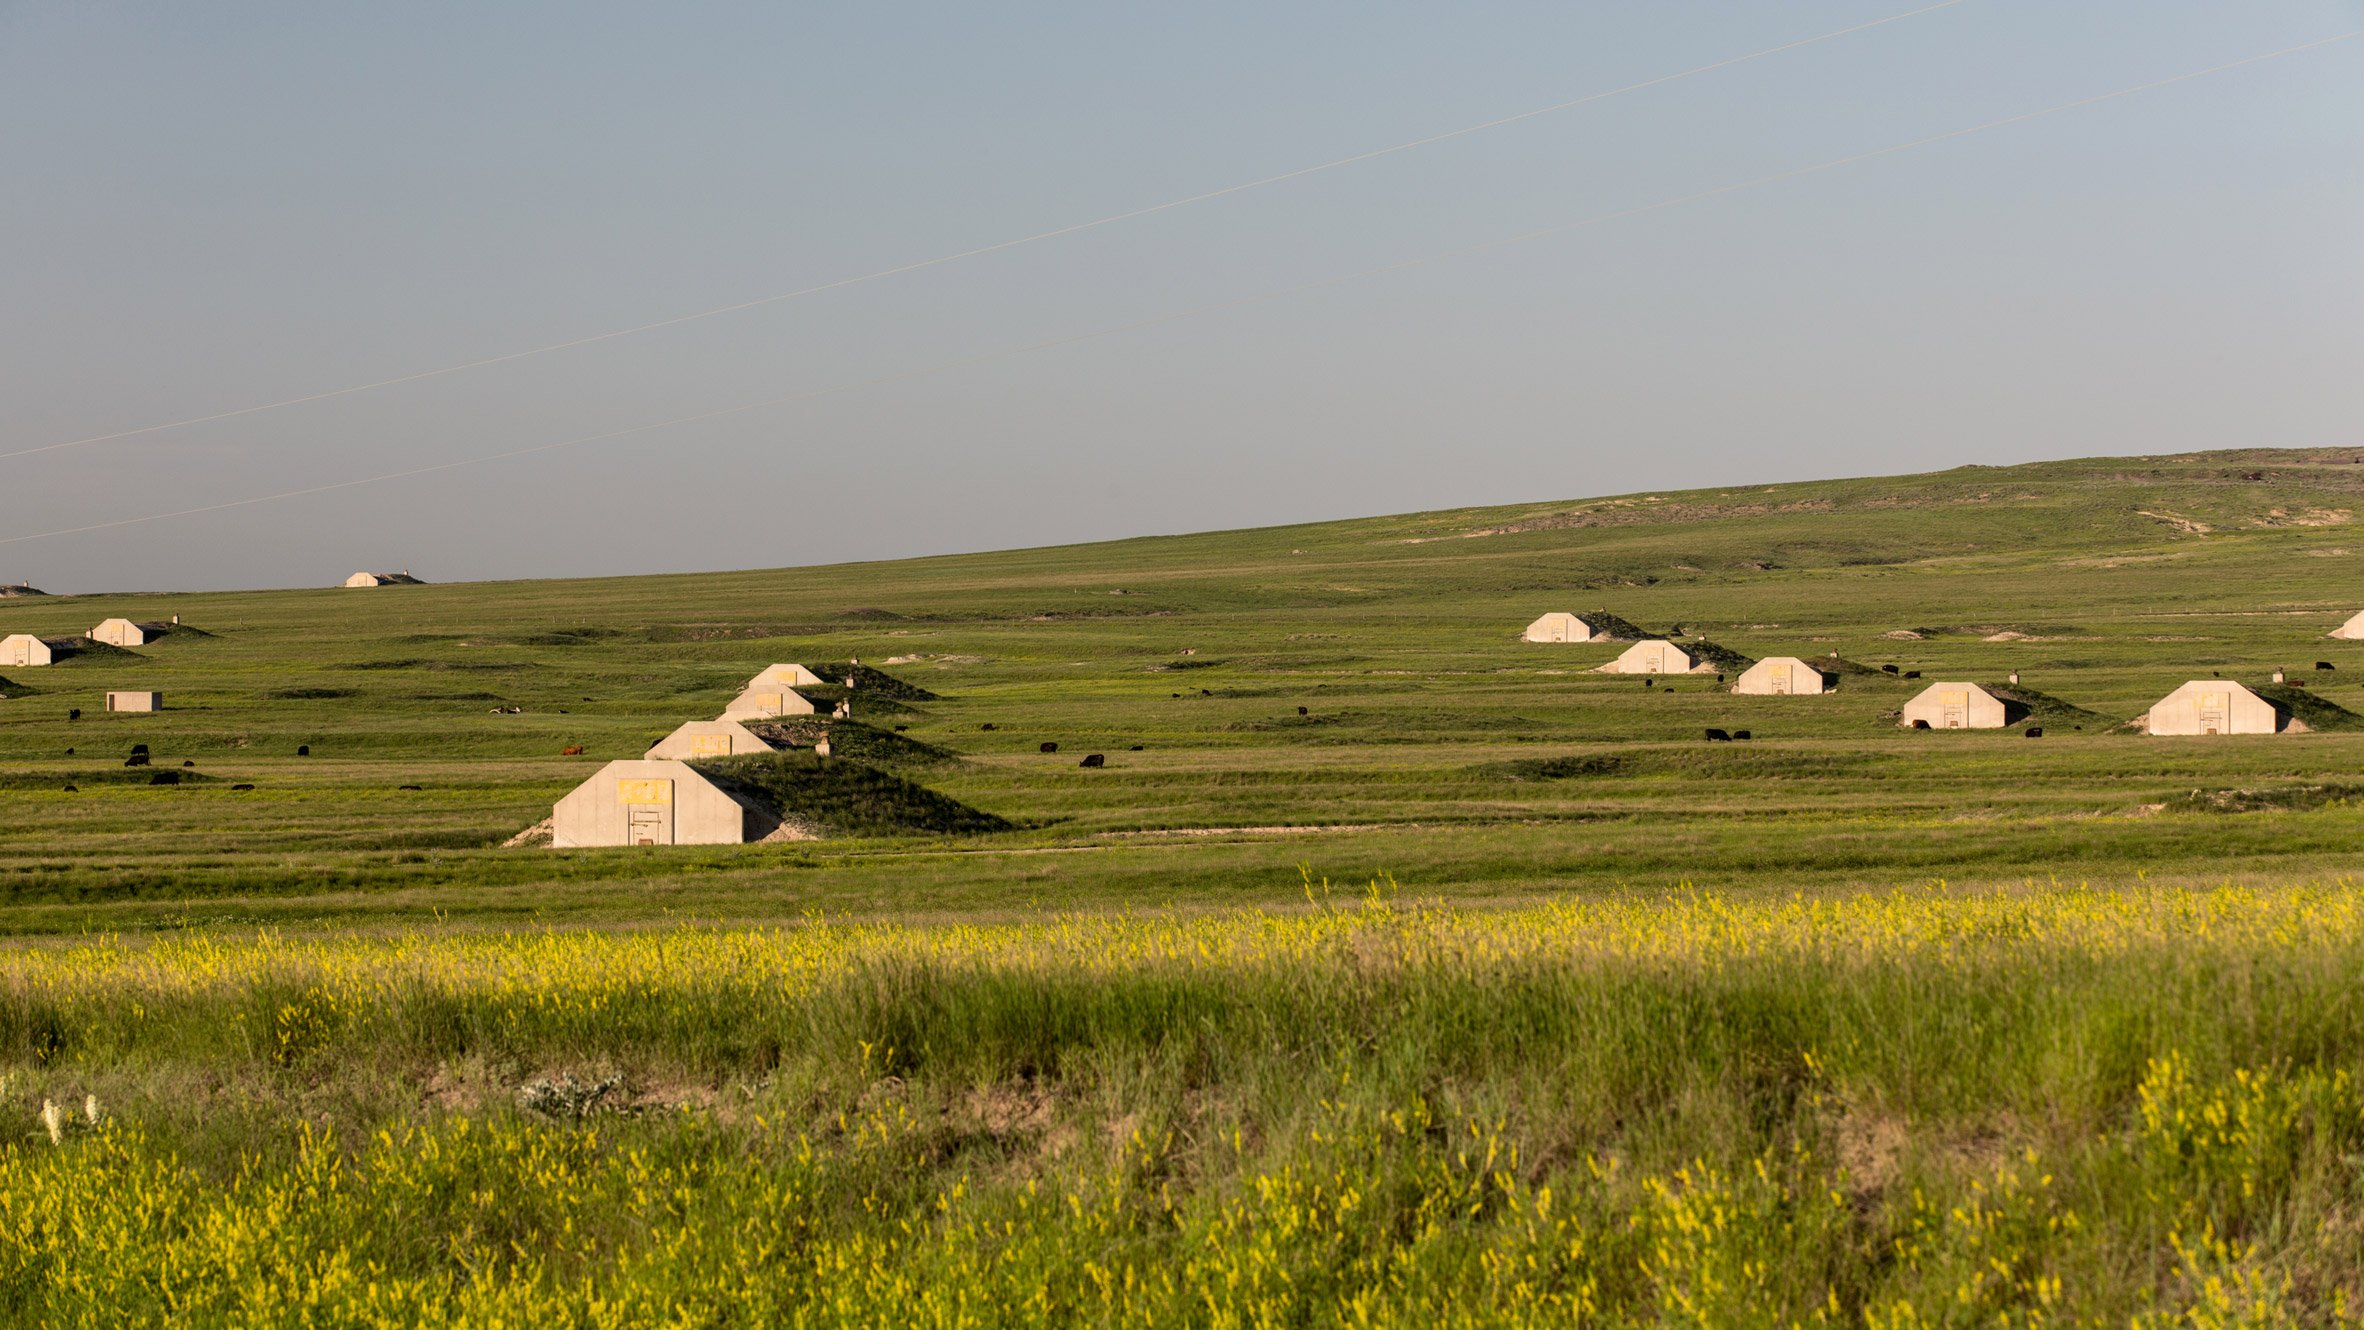 Vivos xPoint bunkers in South Dakota